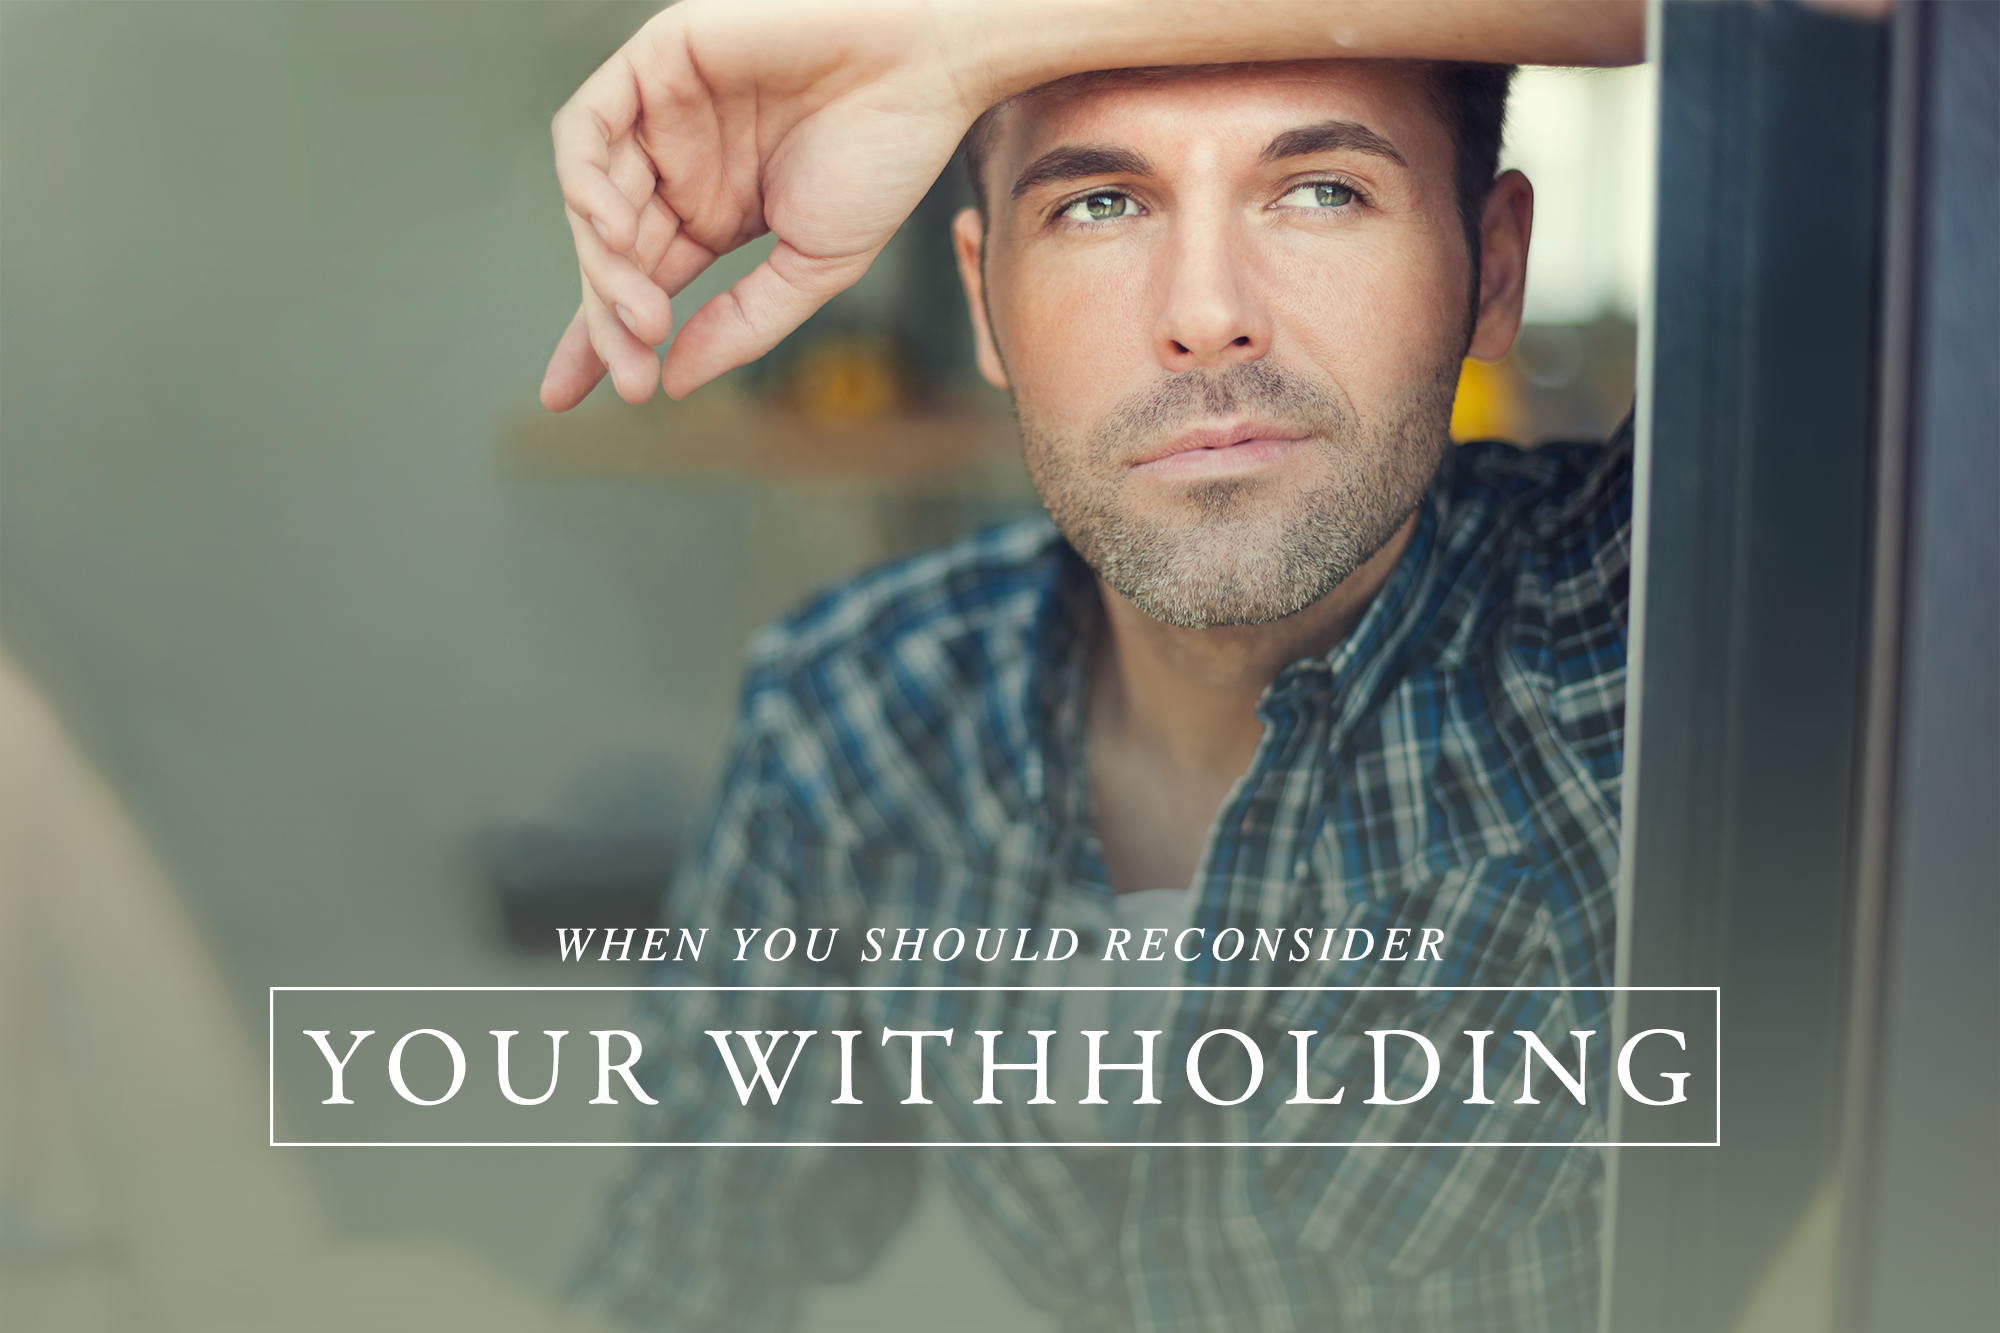 When You Should Reconsider Your Withholding